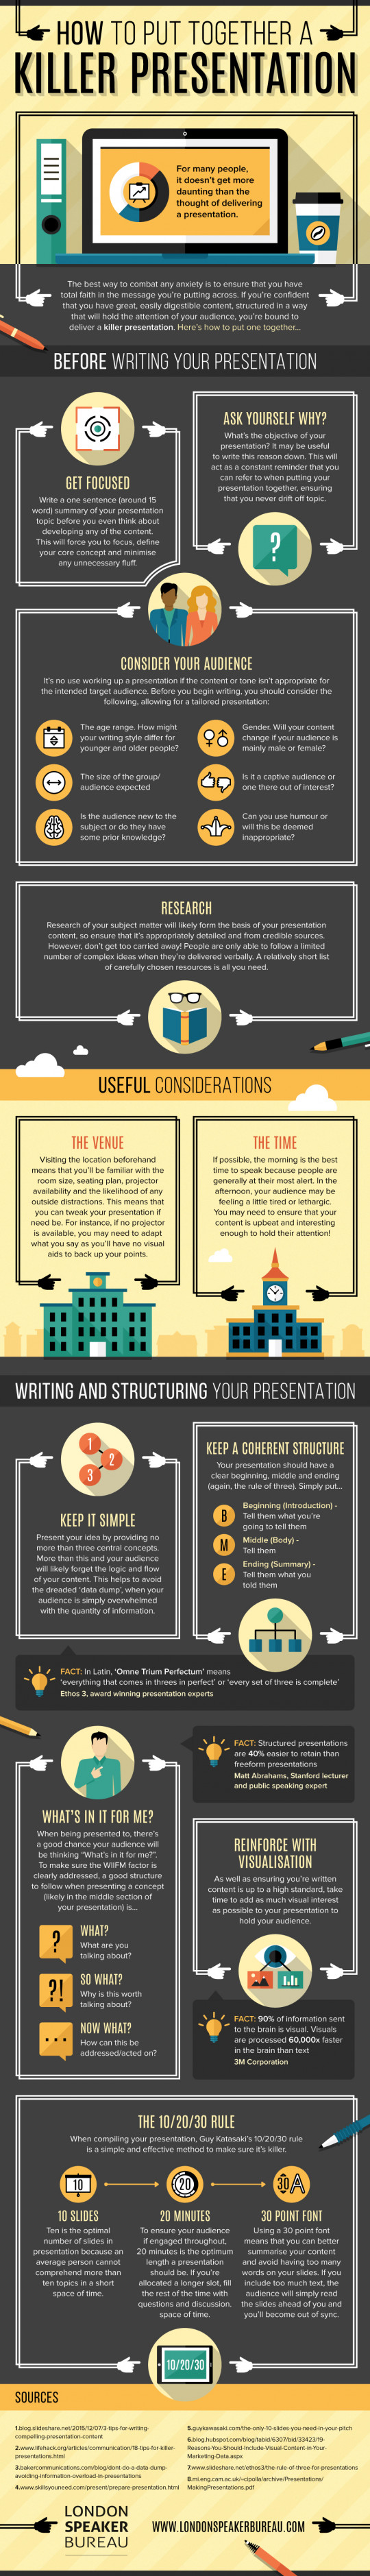 How To Put Together A Killer Presentation